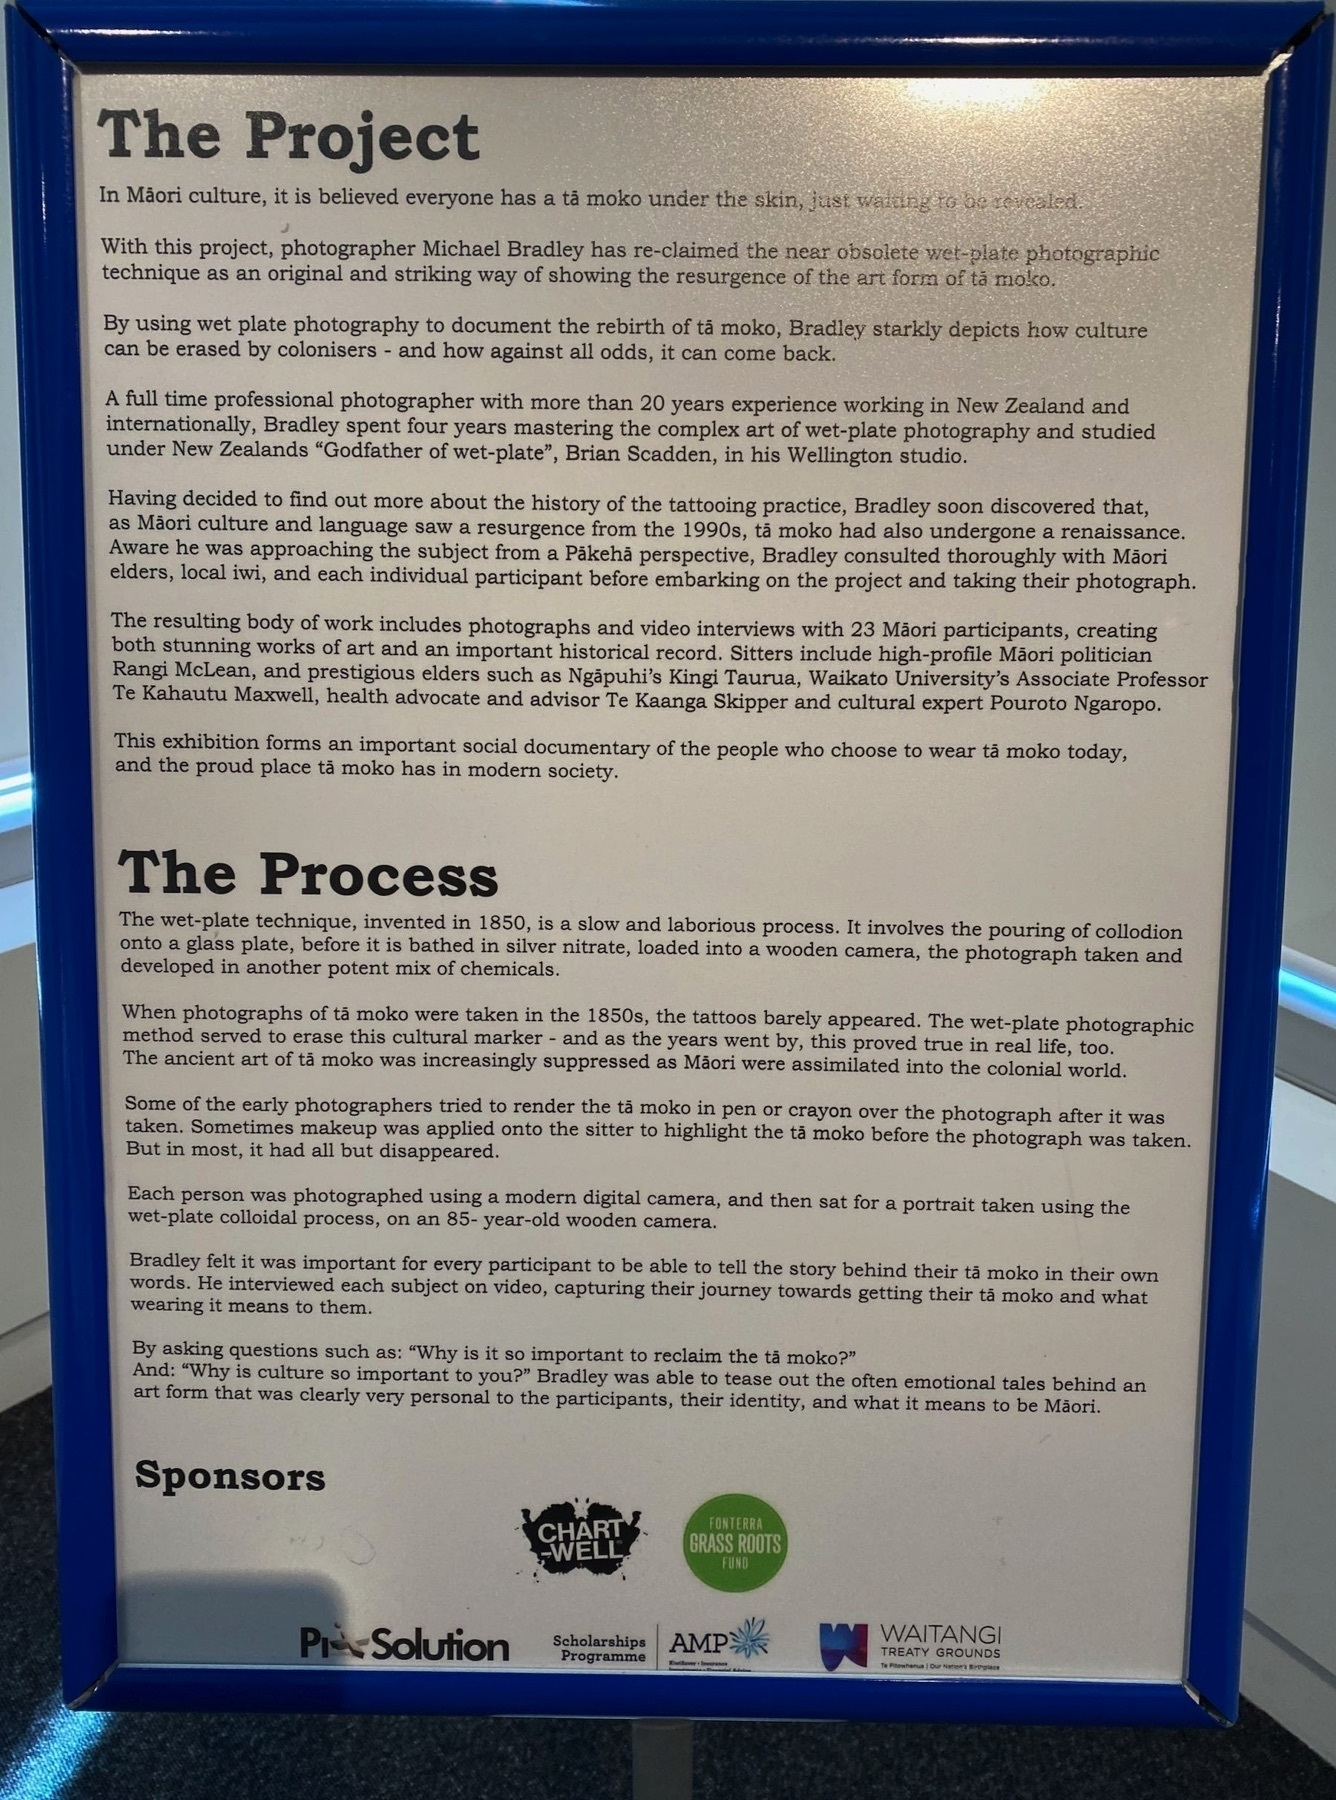 Info board with extensive details of the project.